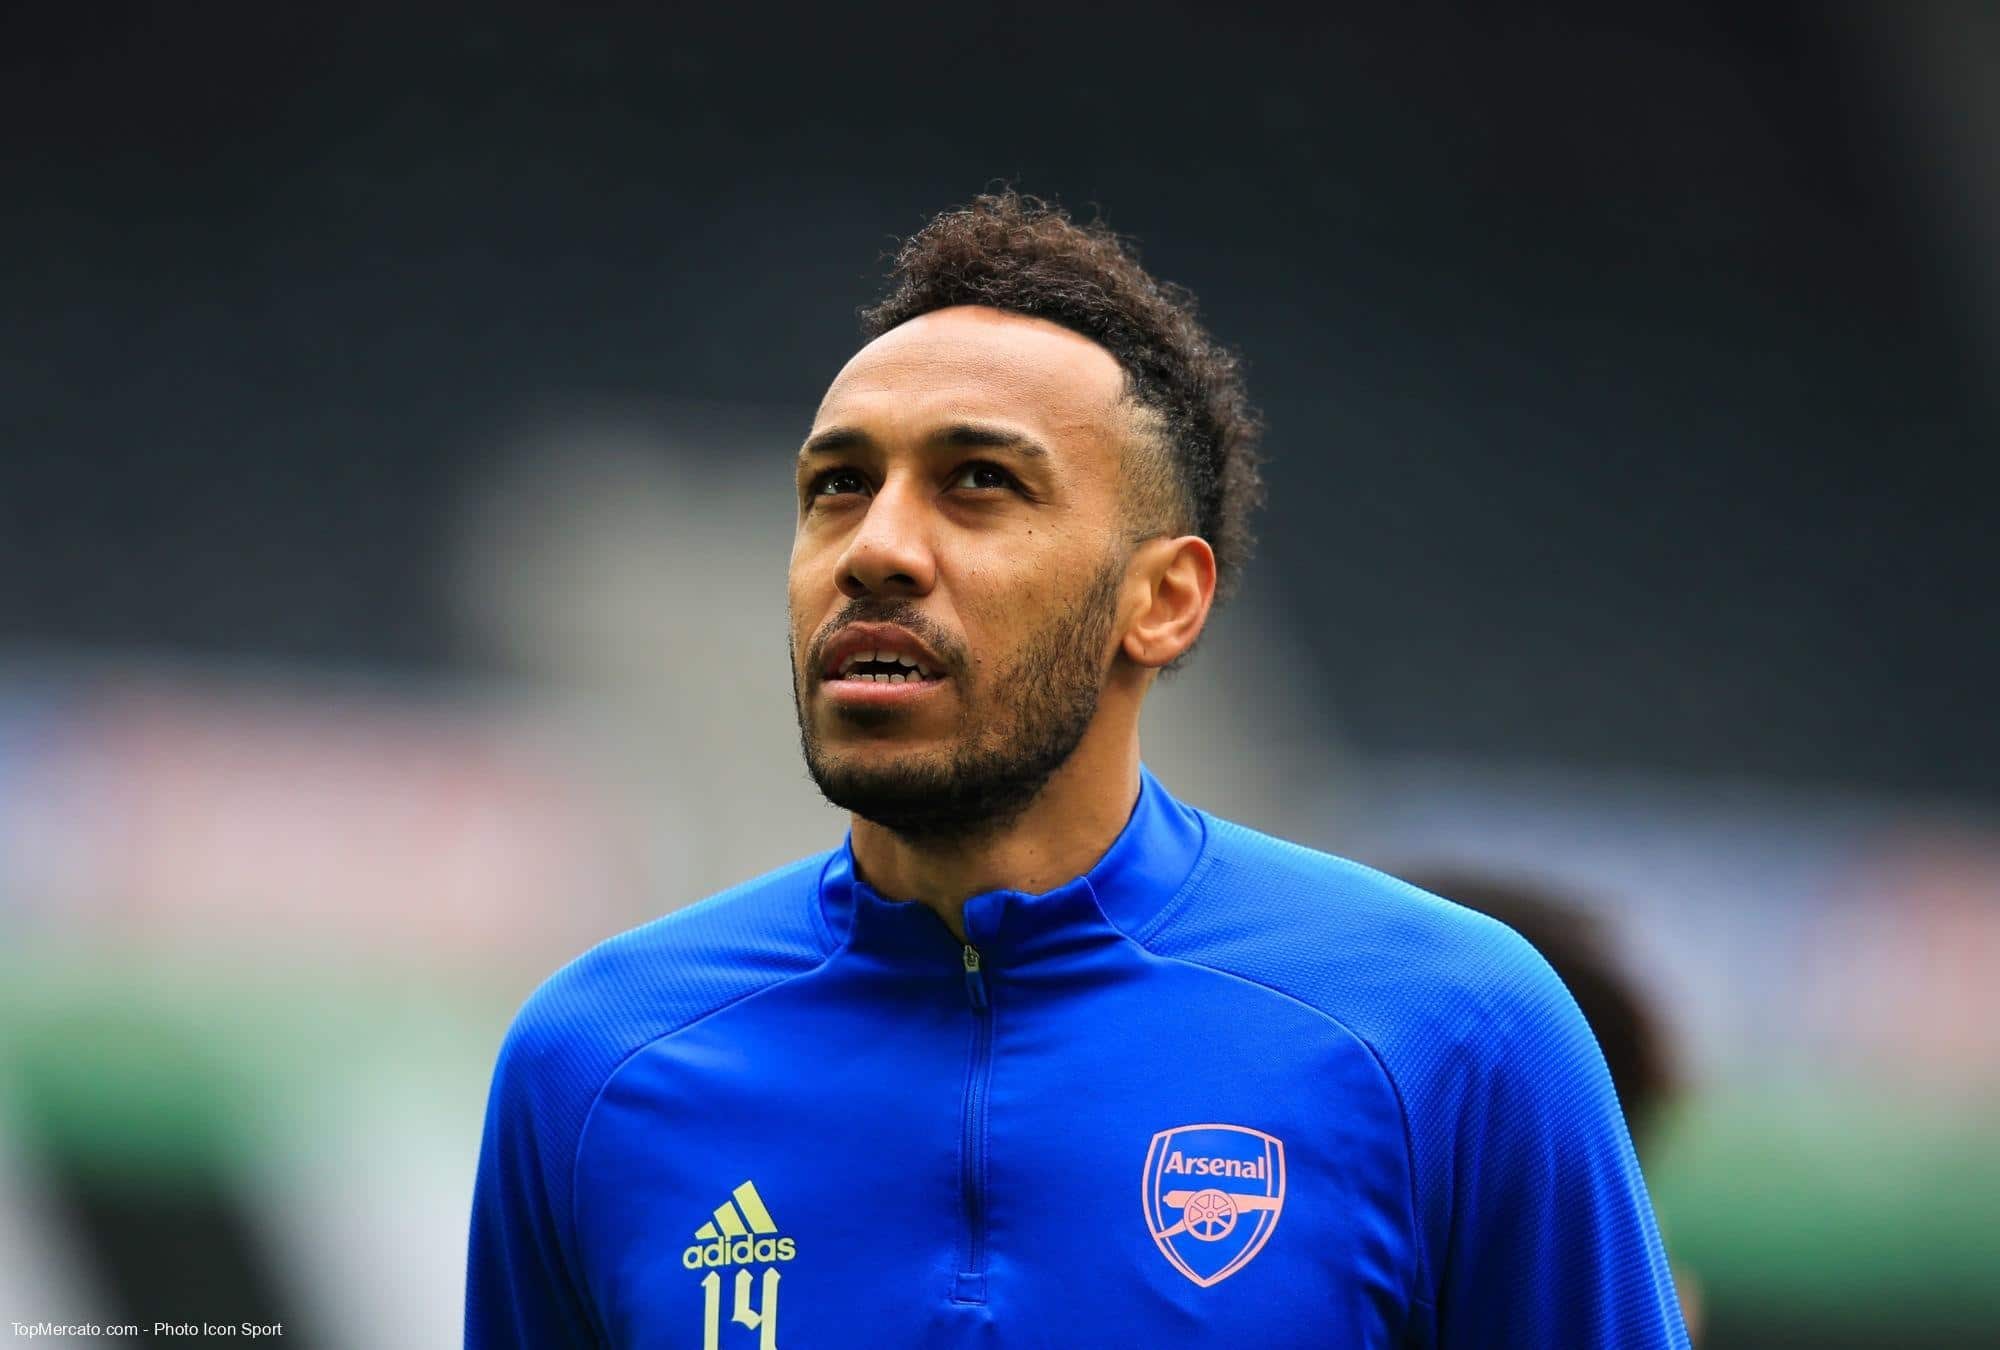 Pierre-Emerick Aubameyang, Arsenal Newcastle